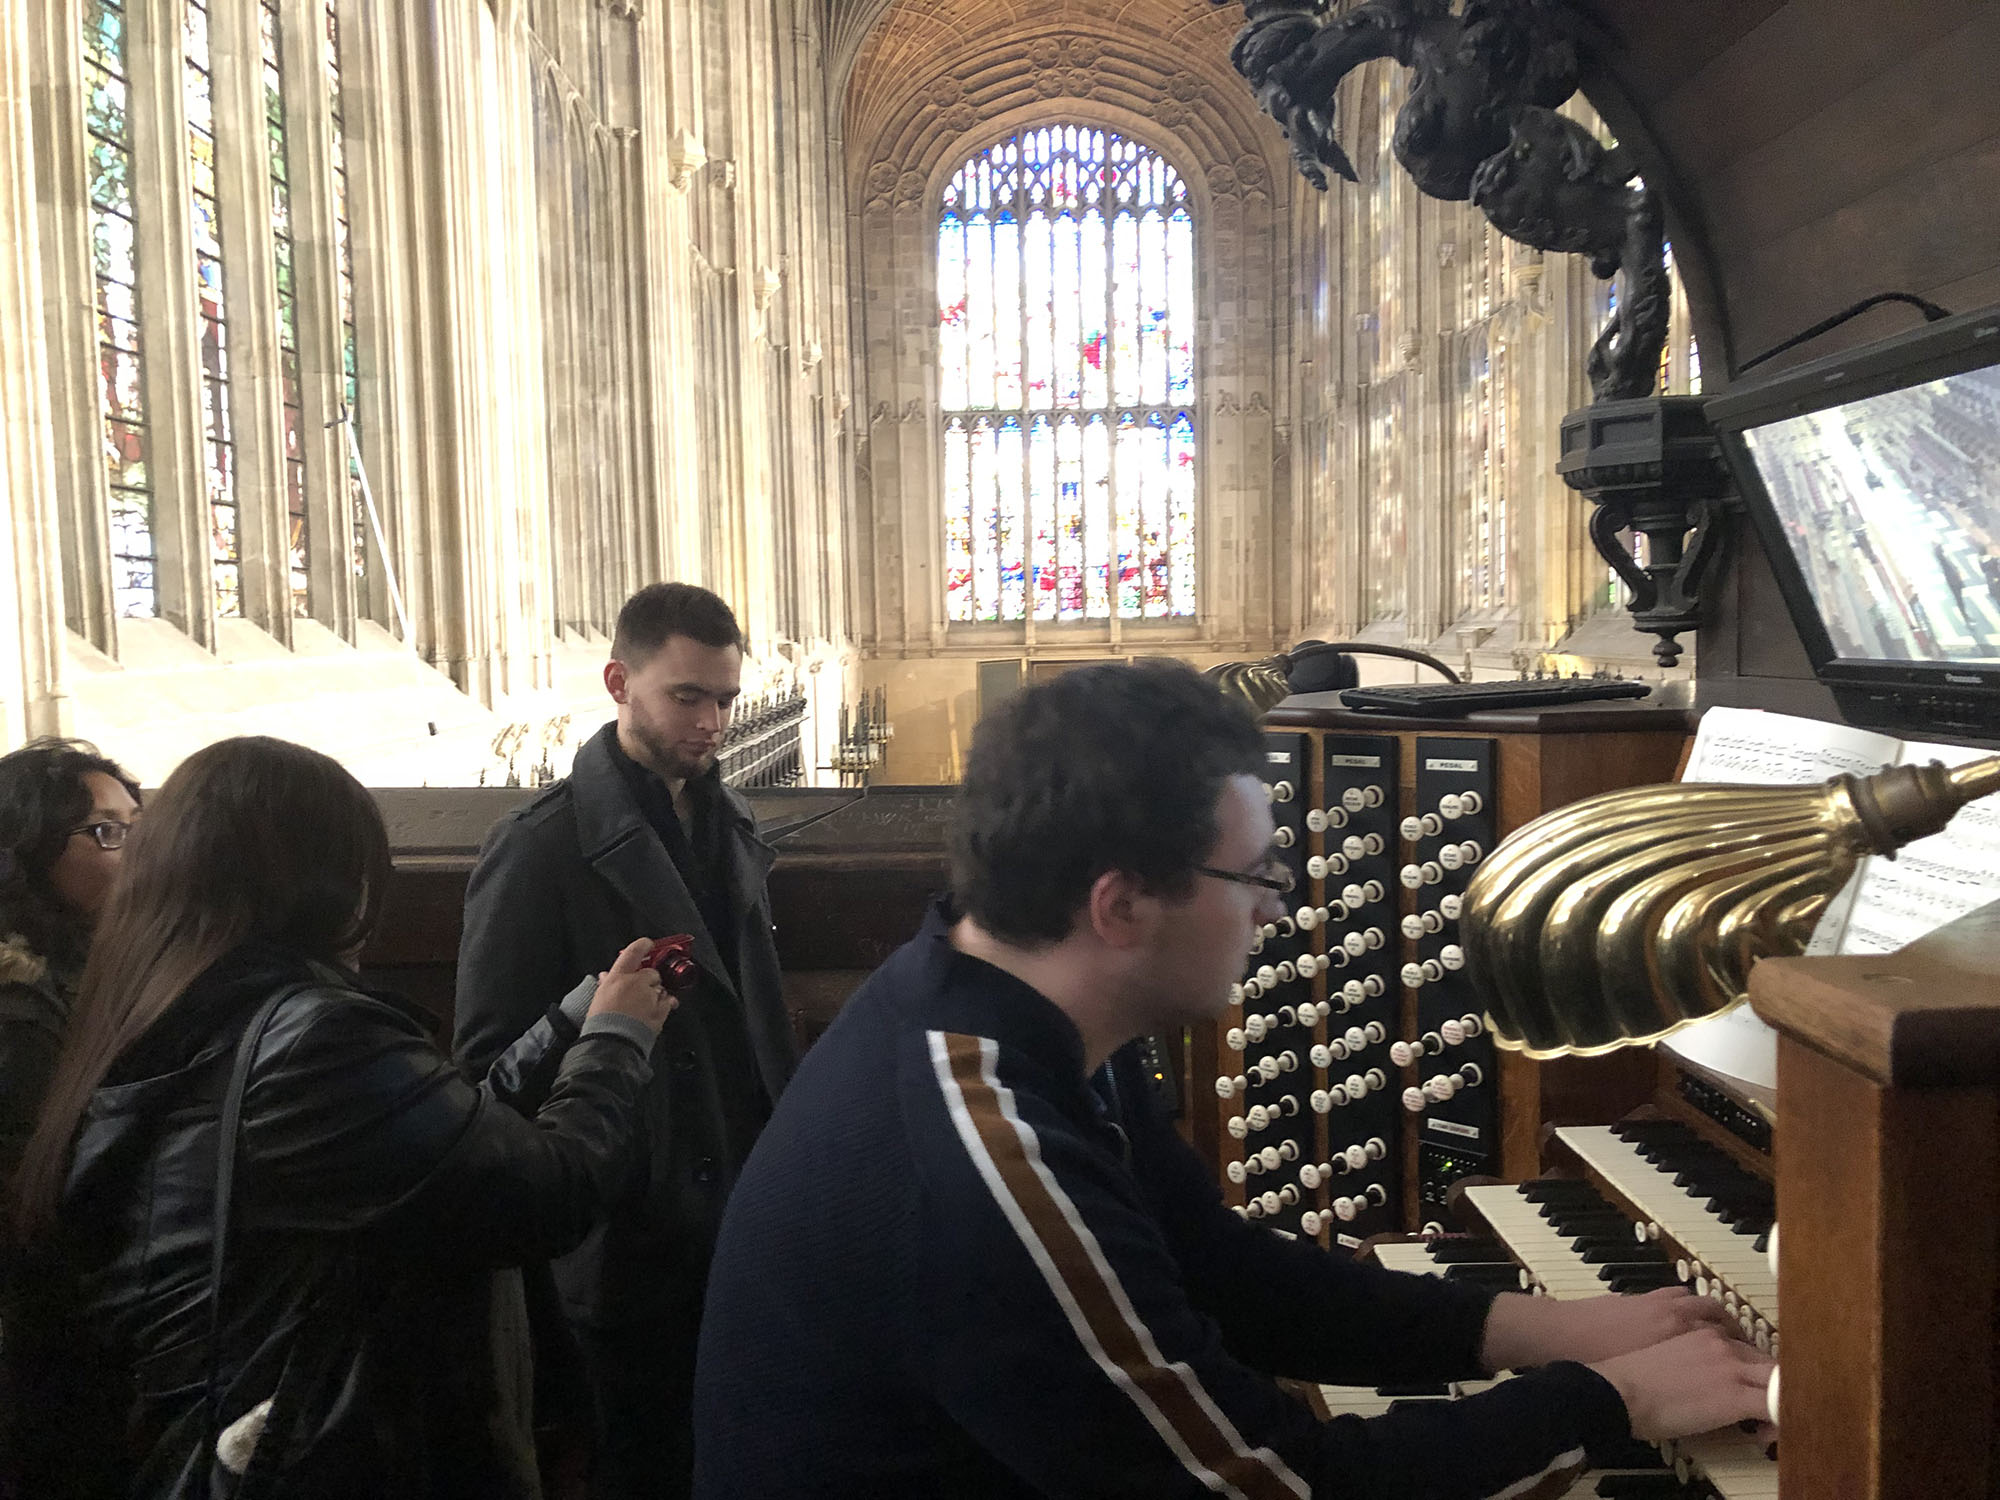 Students were invited up to the organ loft to hear the organ being played.